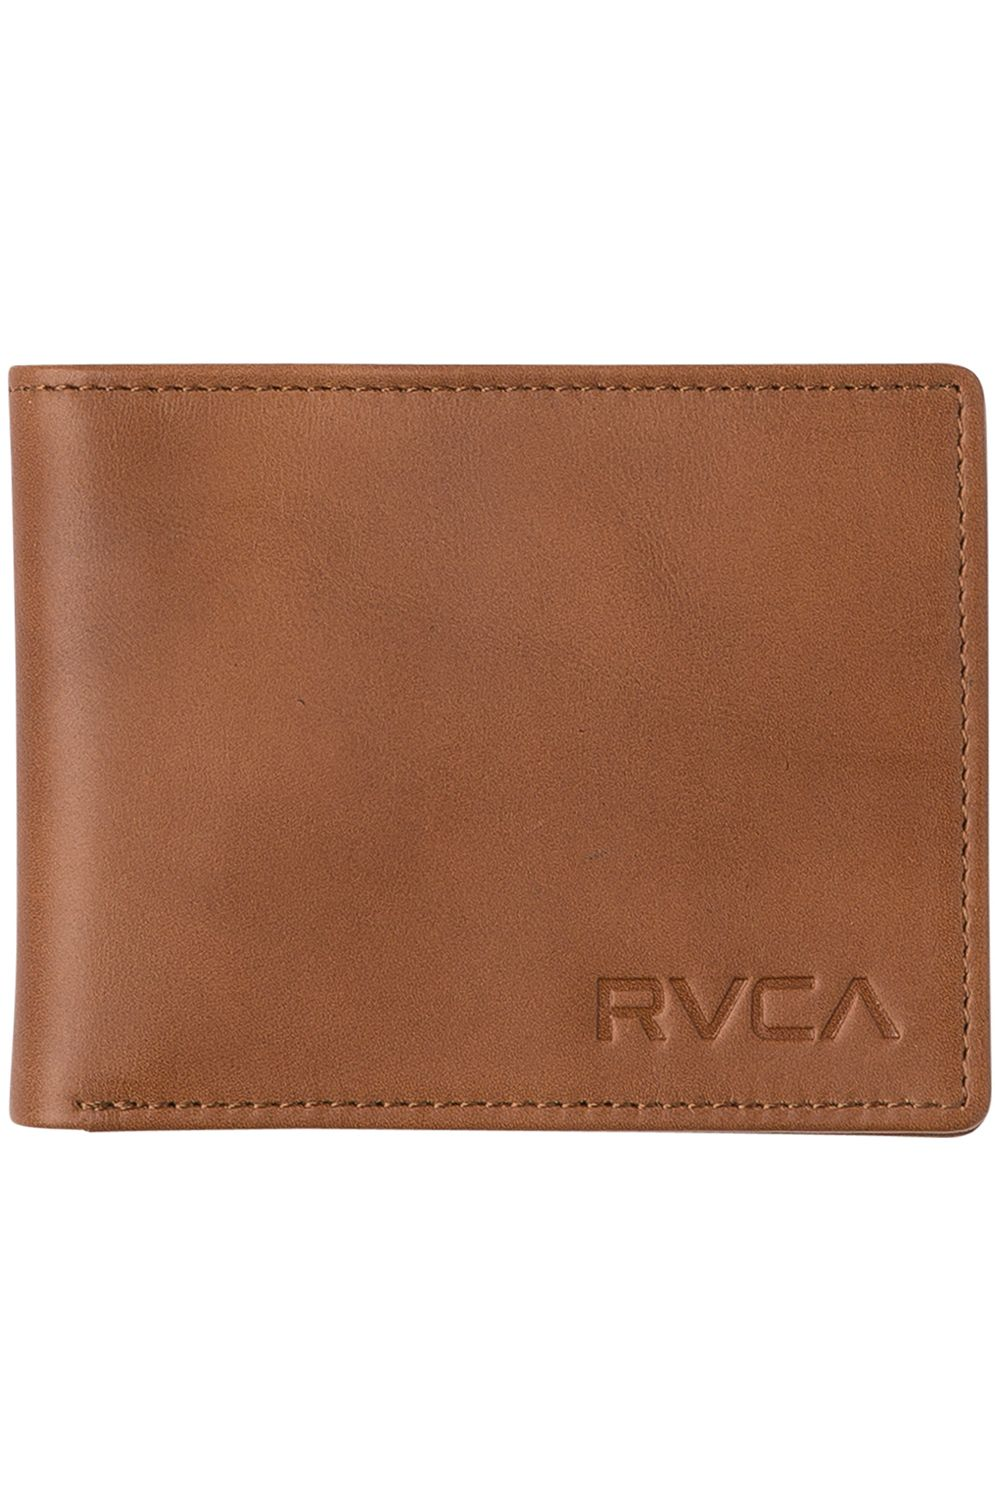 RVCA Leather Wallet CREST BIFOLD WALLET Tan